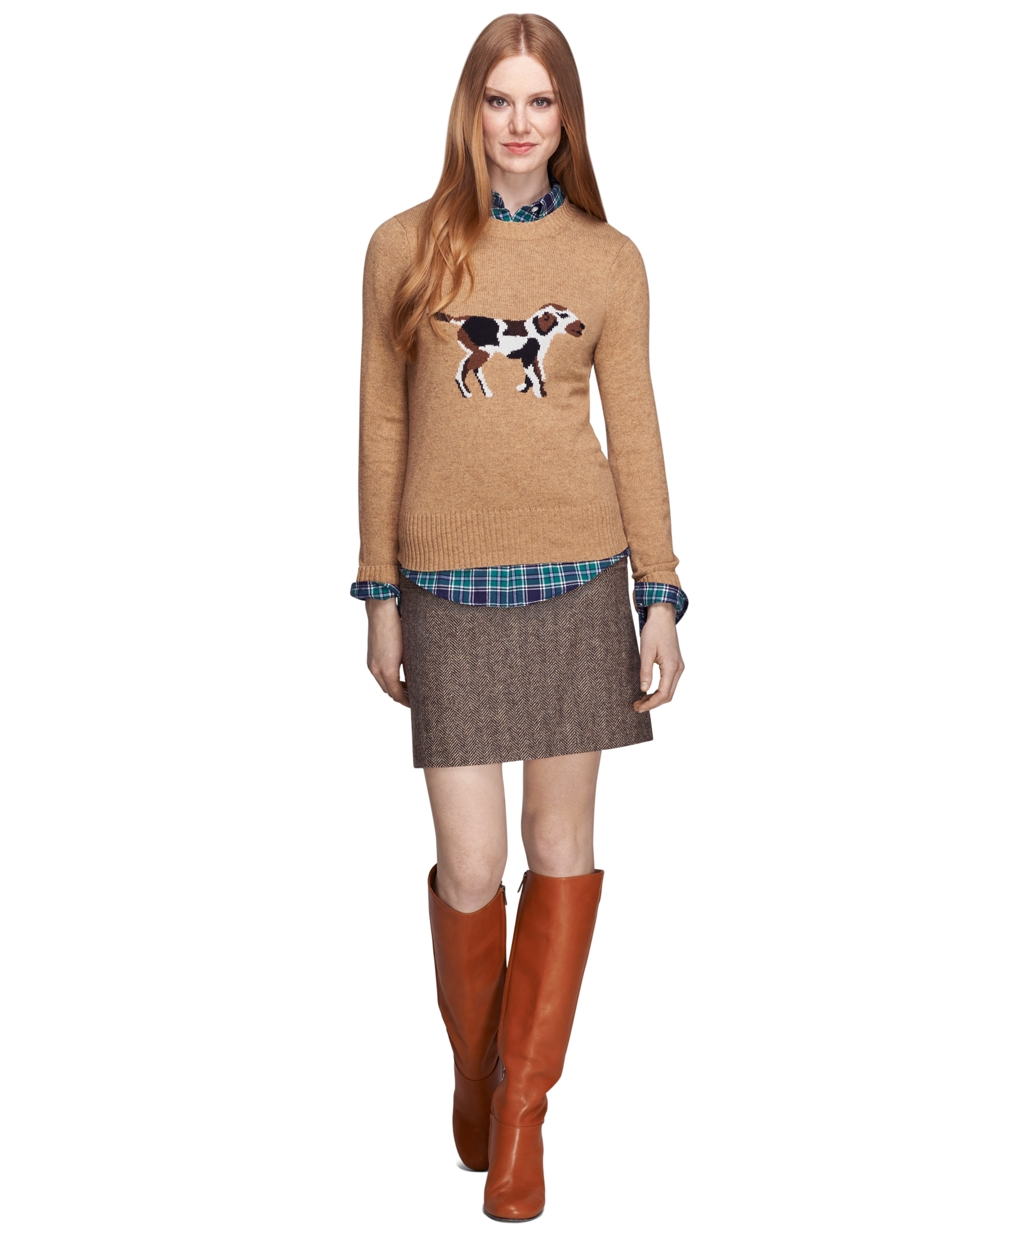 dee218ec6121 The Preppy Leopard   Classic preppy styling with a wild twist   Page 2